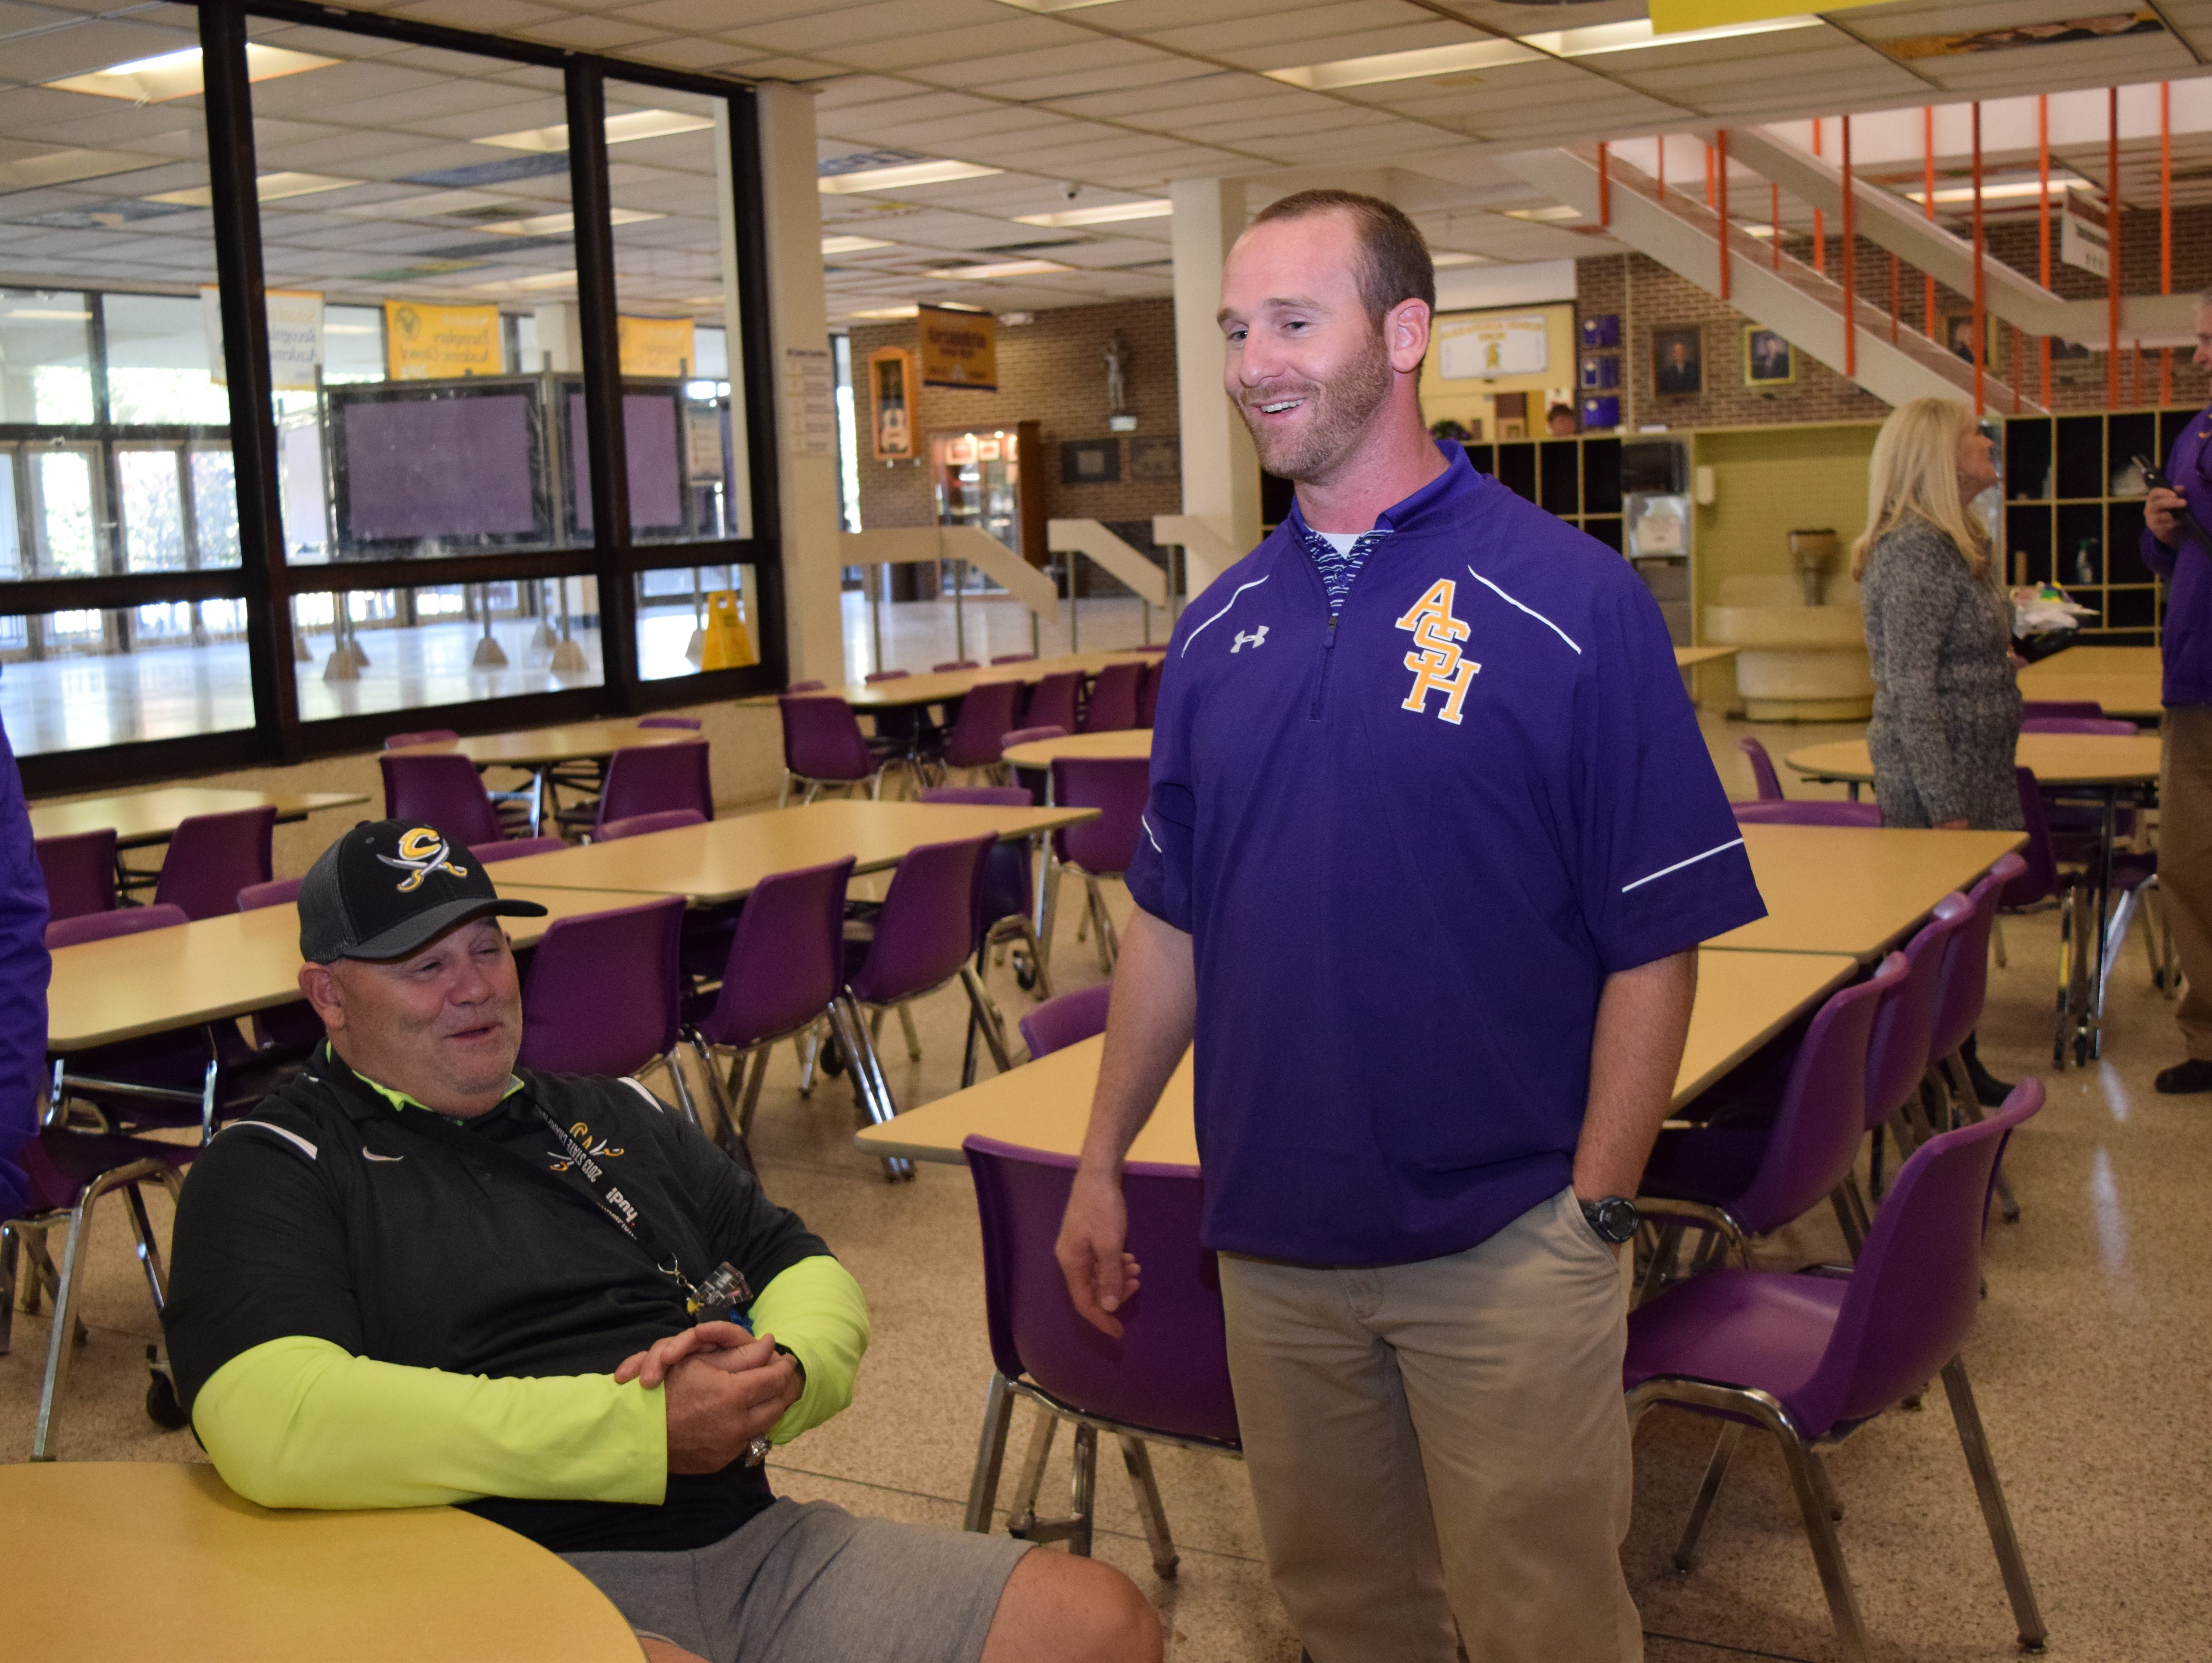 Thomas Bachman (right) was named head football coach at Alexandria Senior High School Friday. With him is his father John Bachman Sr., who is also a football coach.